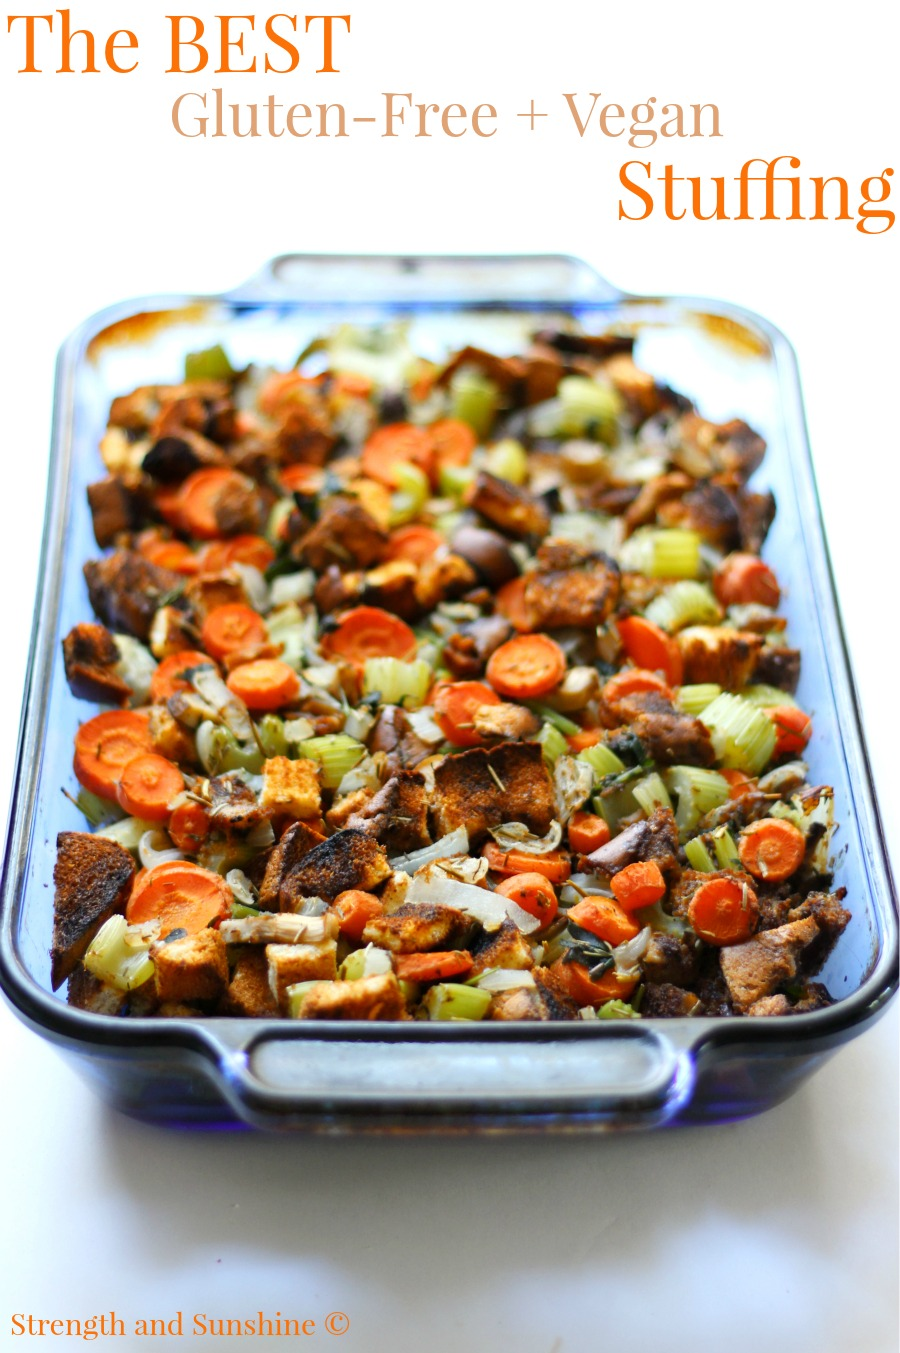 The Best Gluten-Free Vegan Stuffing | Strength and Sunshine @RebeccaGF666 Thanksgiving is never complete without some of The Best Gluten-Free Vegan Stuffing! Impress your guests with this essential side dish recipe that's safe for all food allergies, loved by all, and may just become the new star of the show!